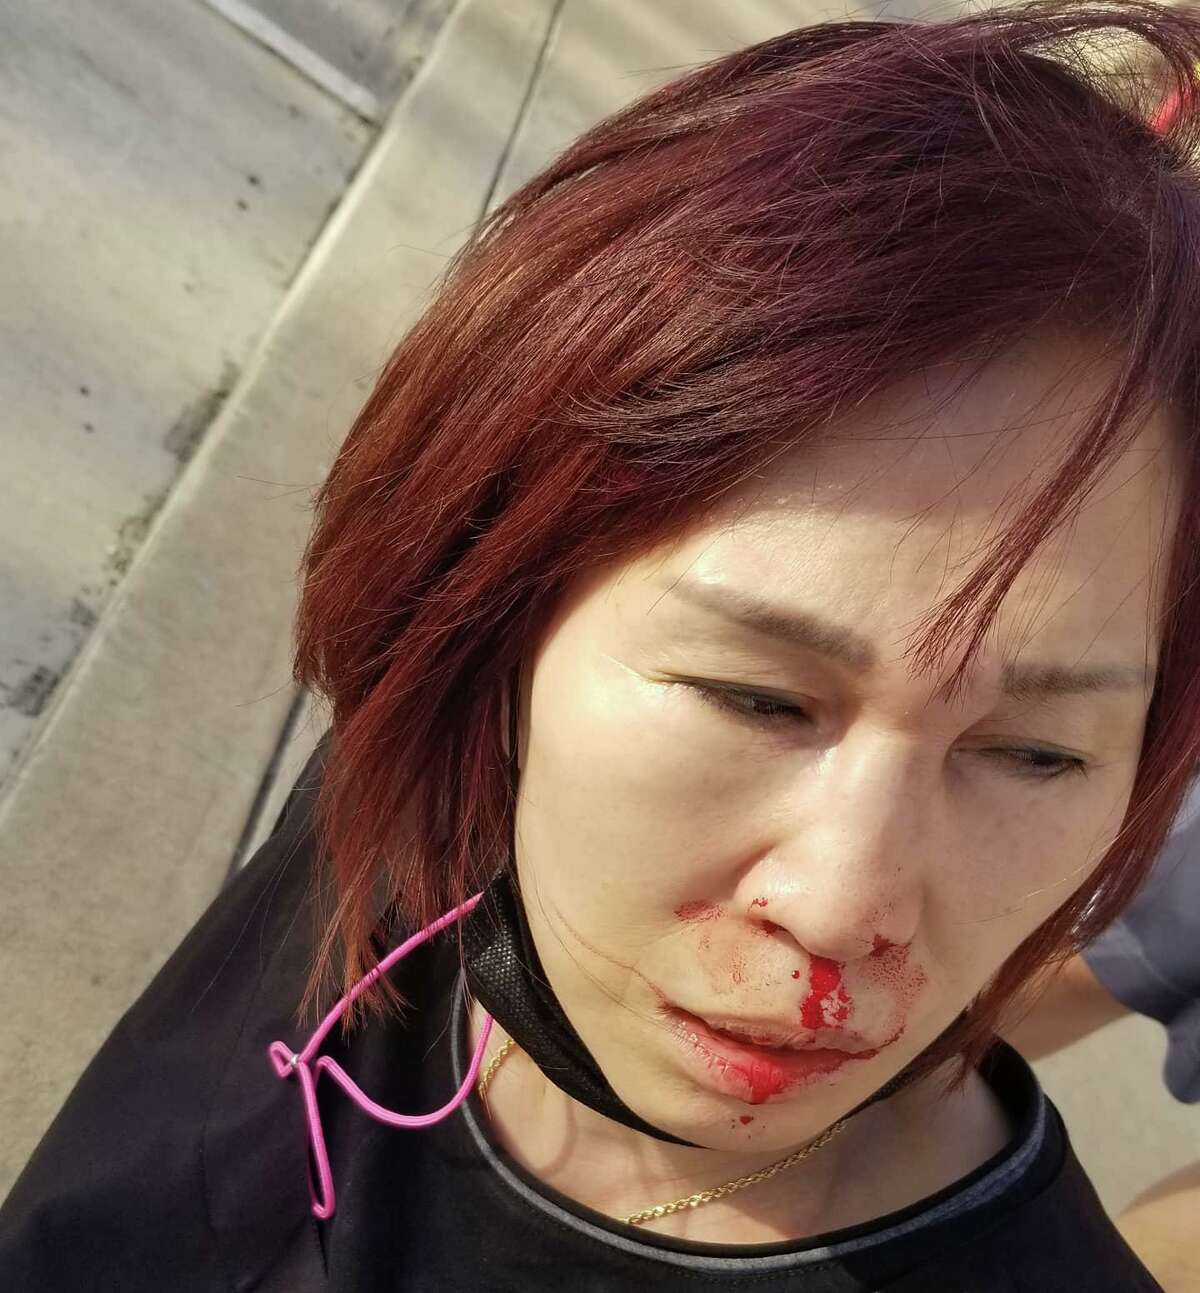 Jung Kim, who owns Uptown Beauty Supply, 12412 Kuykendahl Rd, was injured as customers assaulted the family on March 17 at the store in an unprovoked attack Wednesday, March 24, 2021, in Houston.